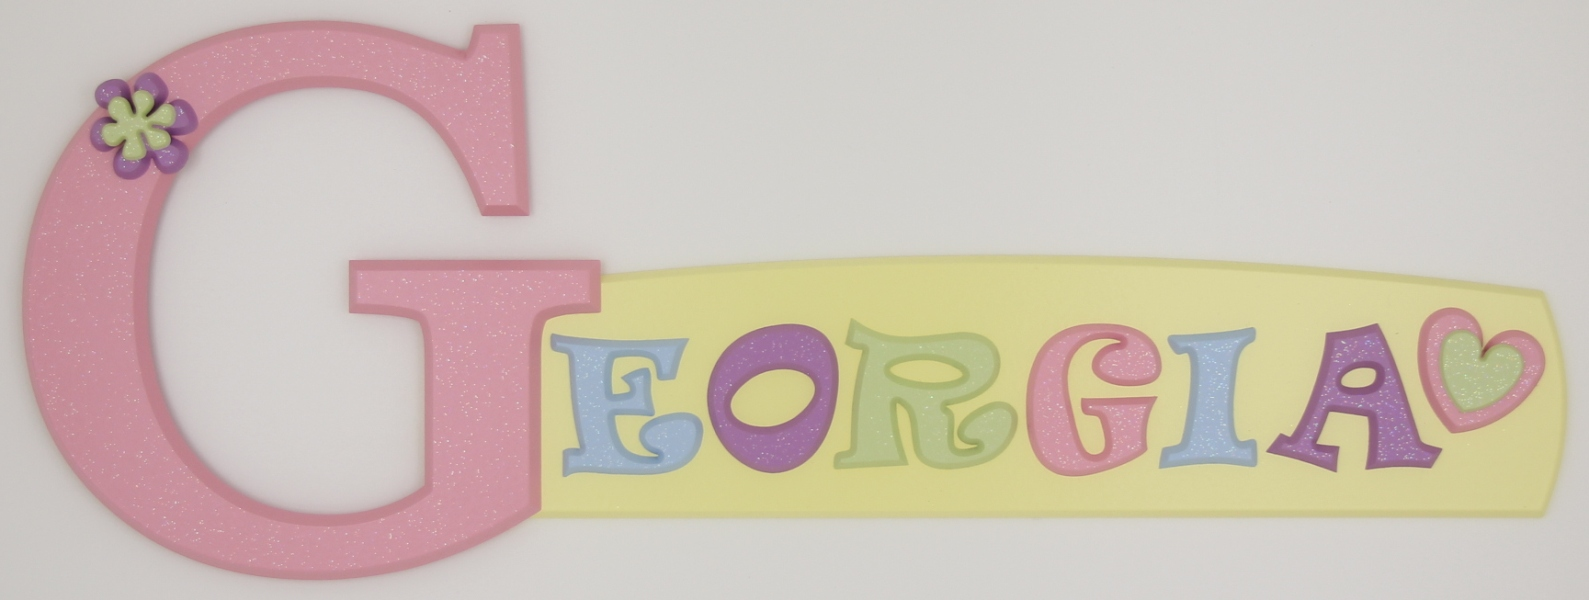 painted wooden name sign for Georgia